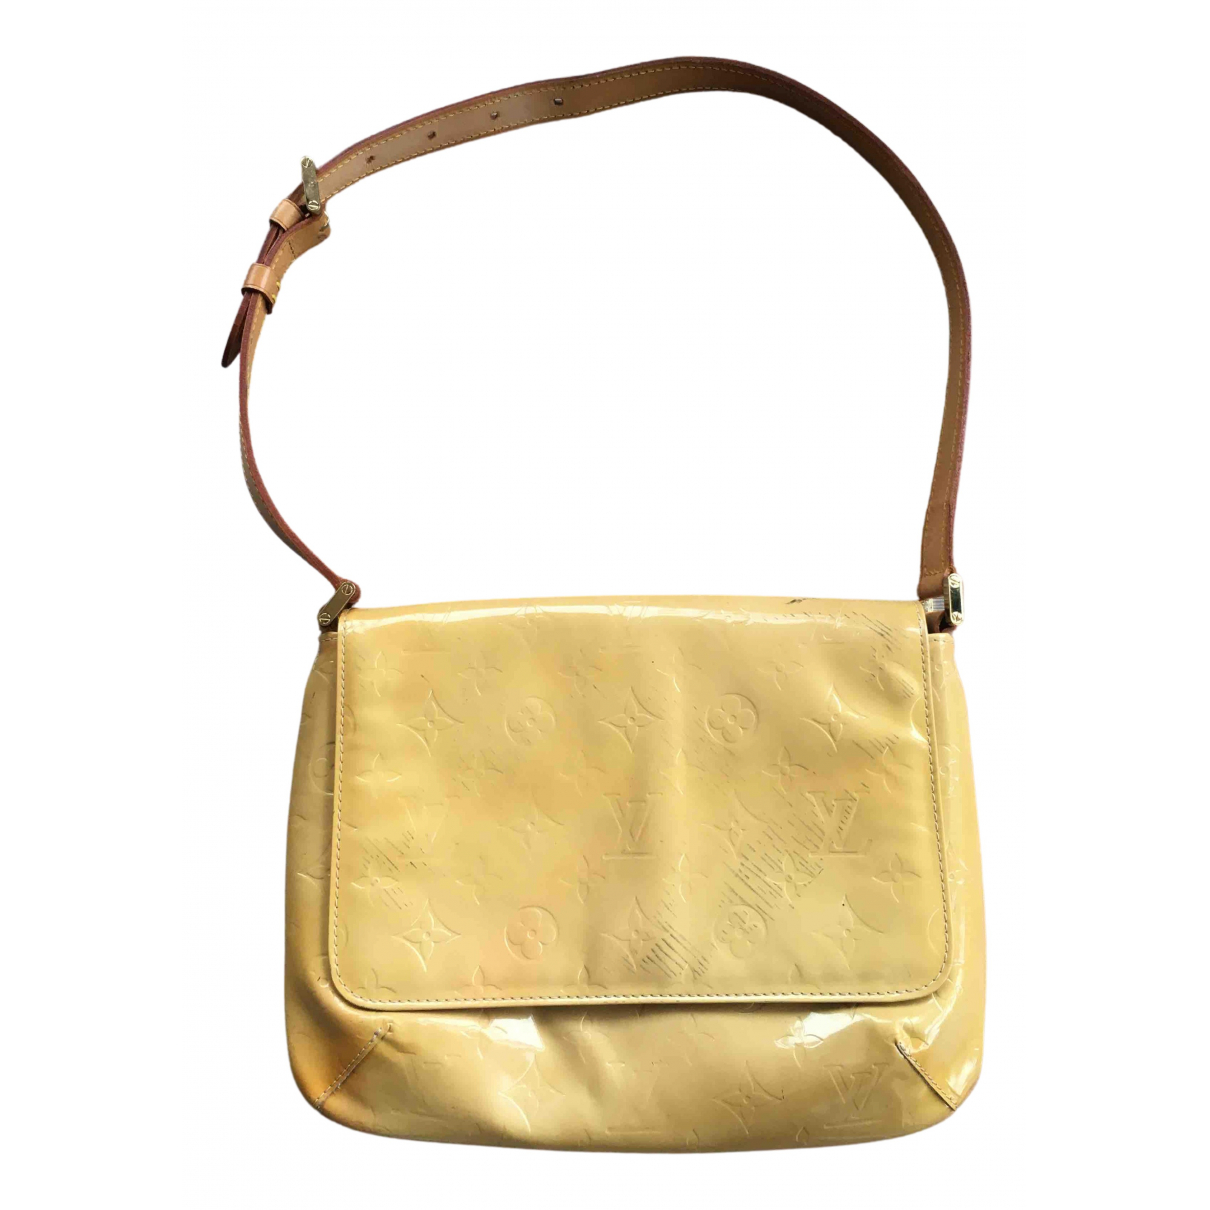 Louis Vuitton N Yellow Patent leather handbag for Women N